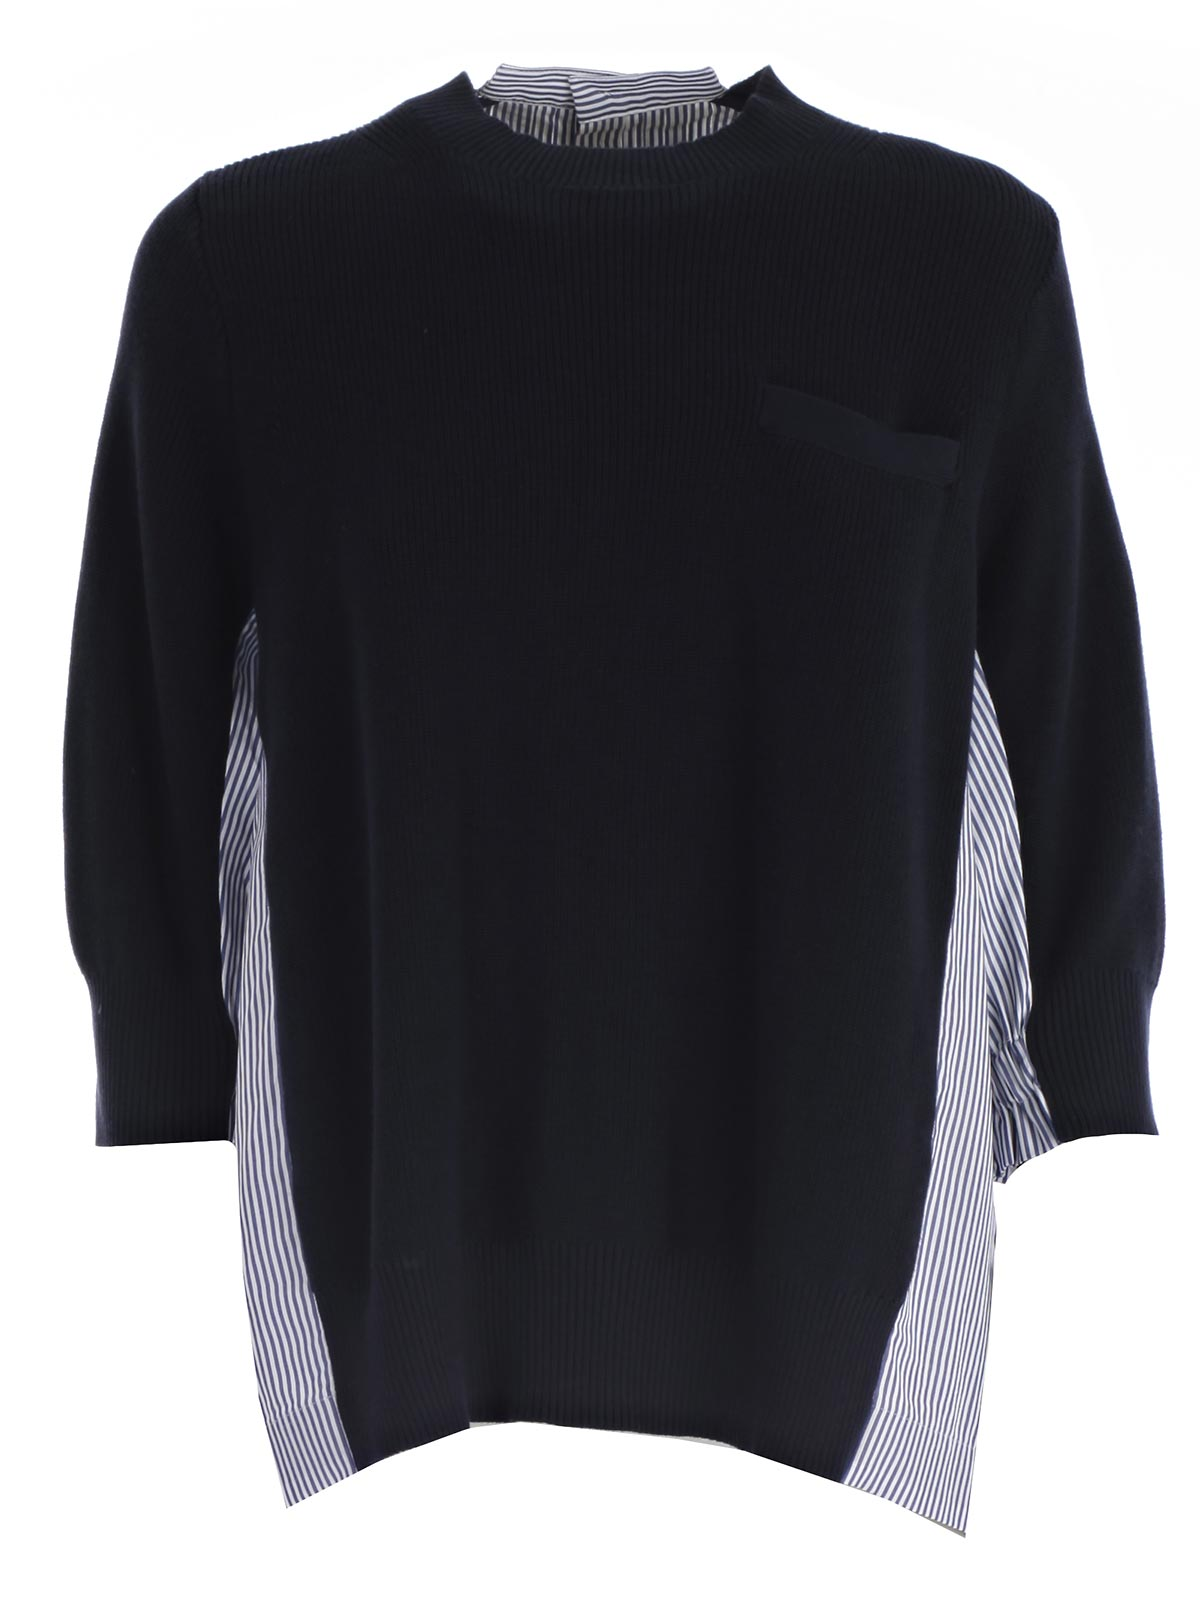 Picture of SACAI JERSEY 3/4 SLEEVE SWEATER ROUND NECK